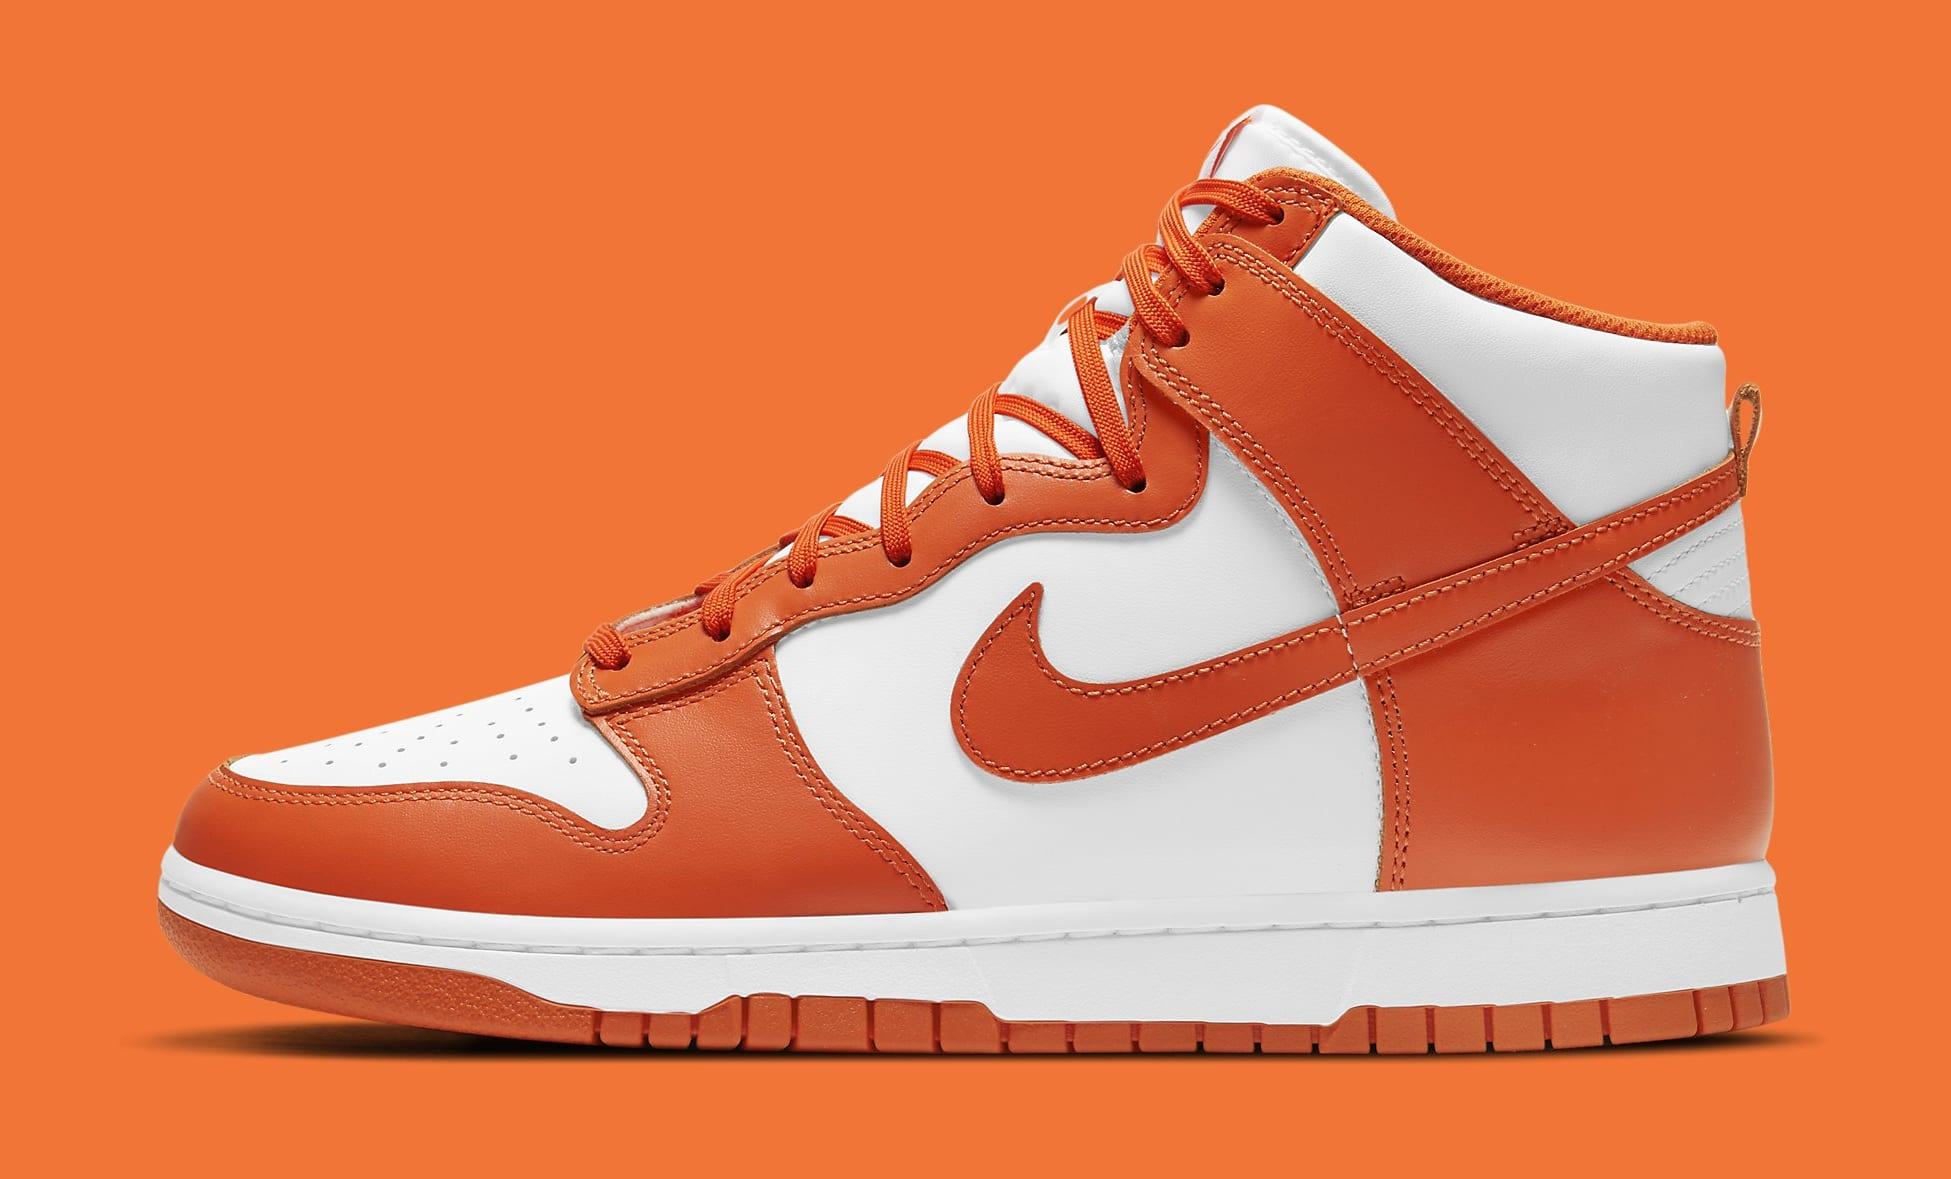 Nike Dunk High 'Syracuse' 2021 DD1399-101 Lateral